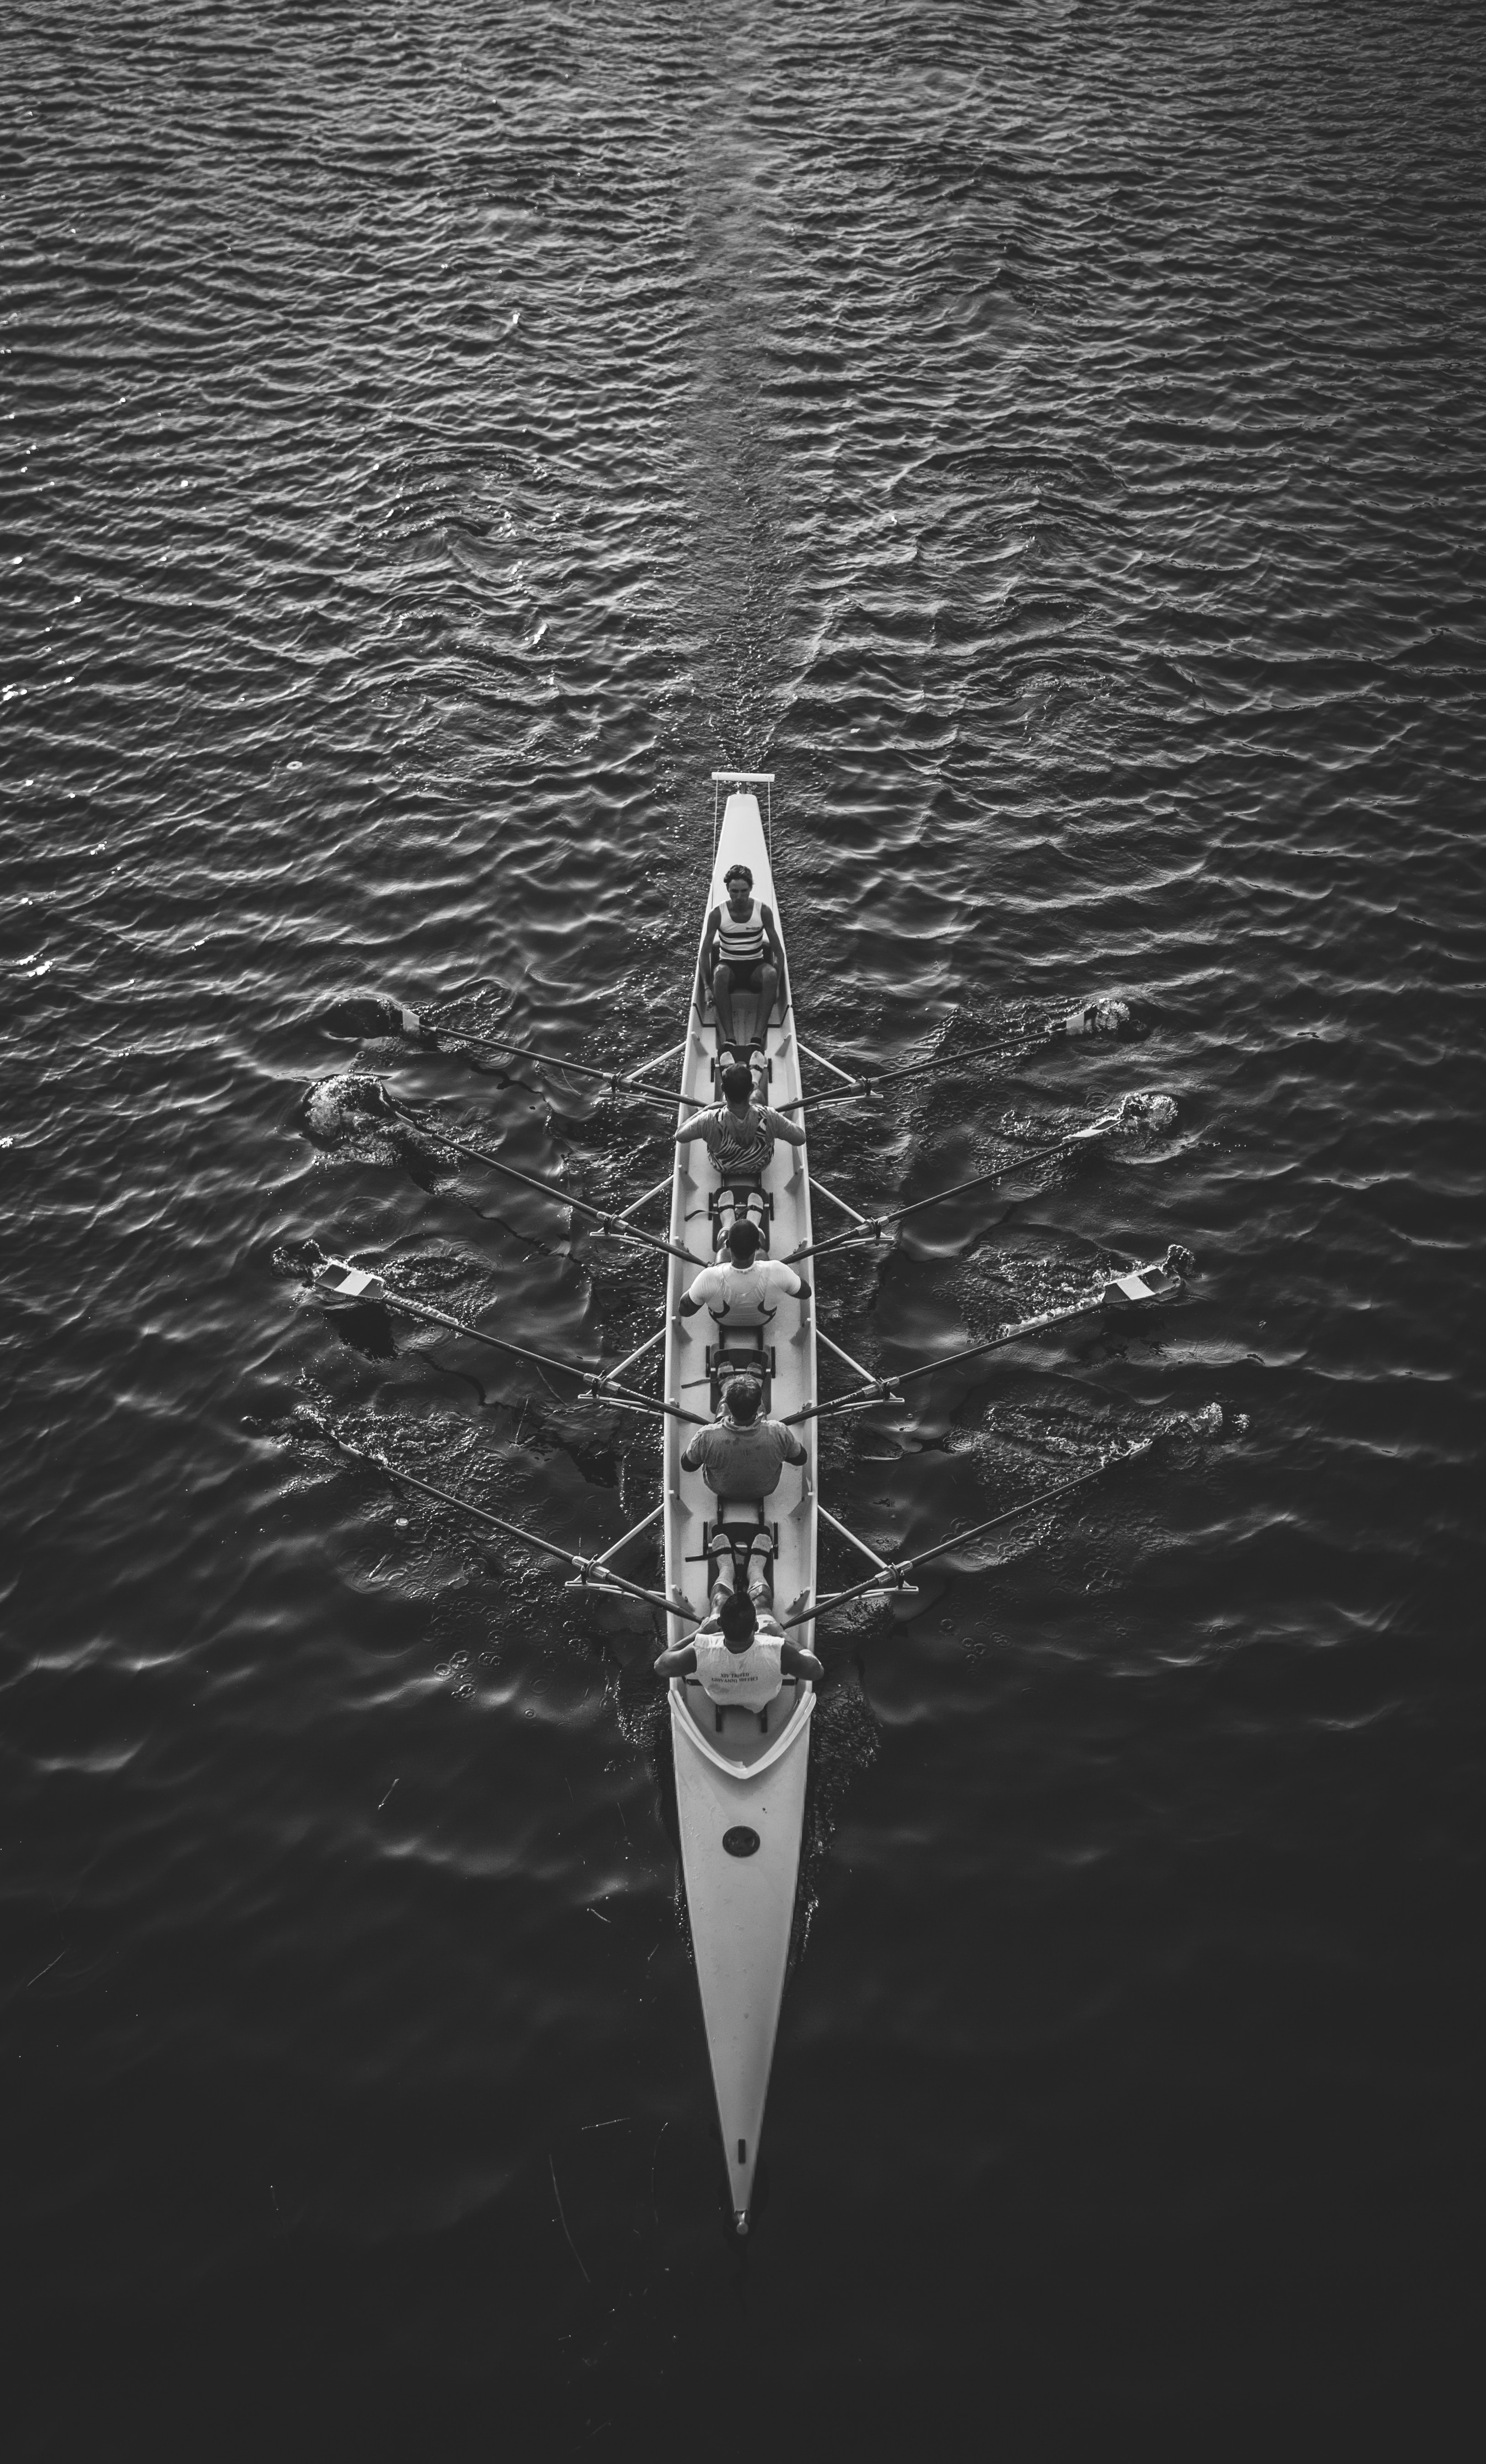 aerial view of rowers rowing in large body of water